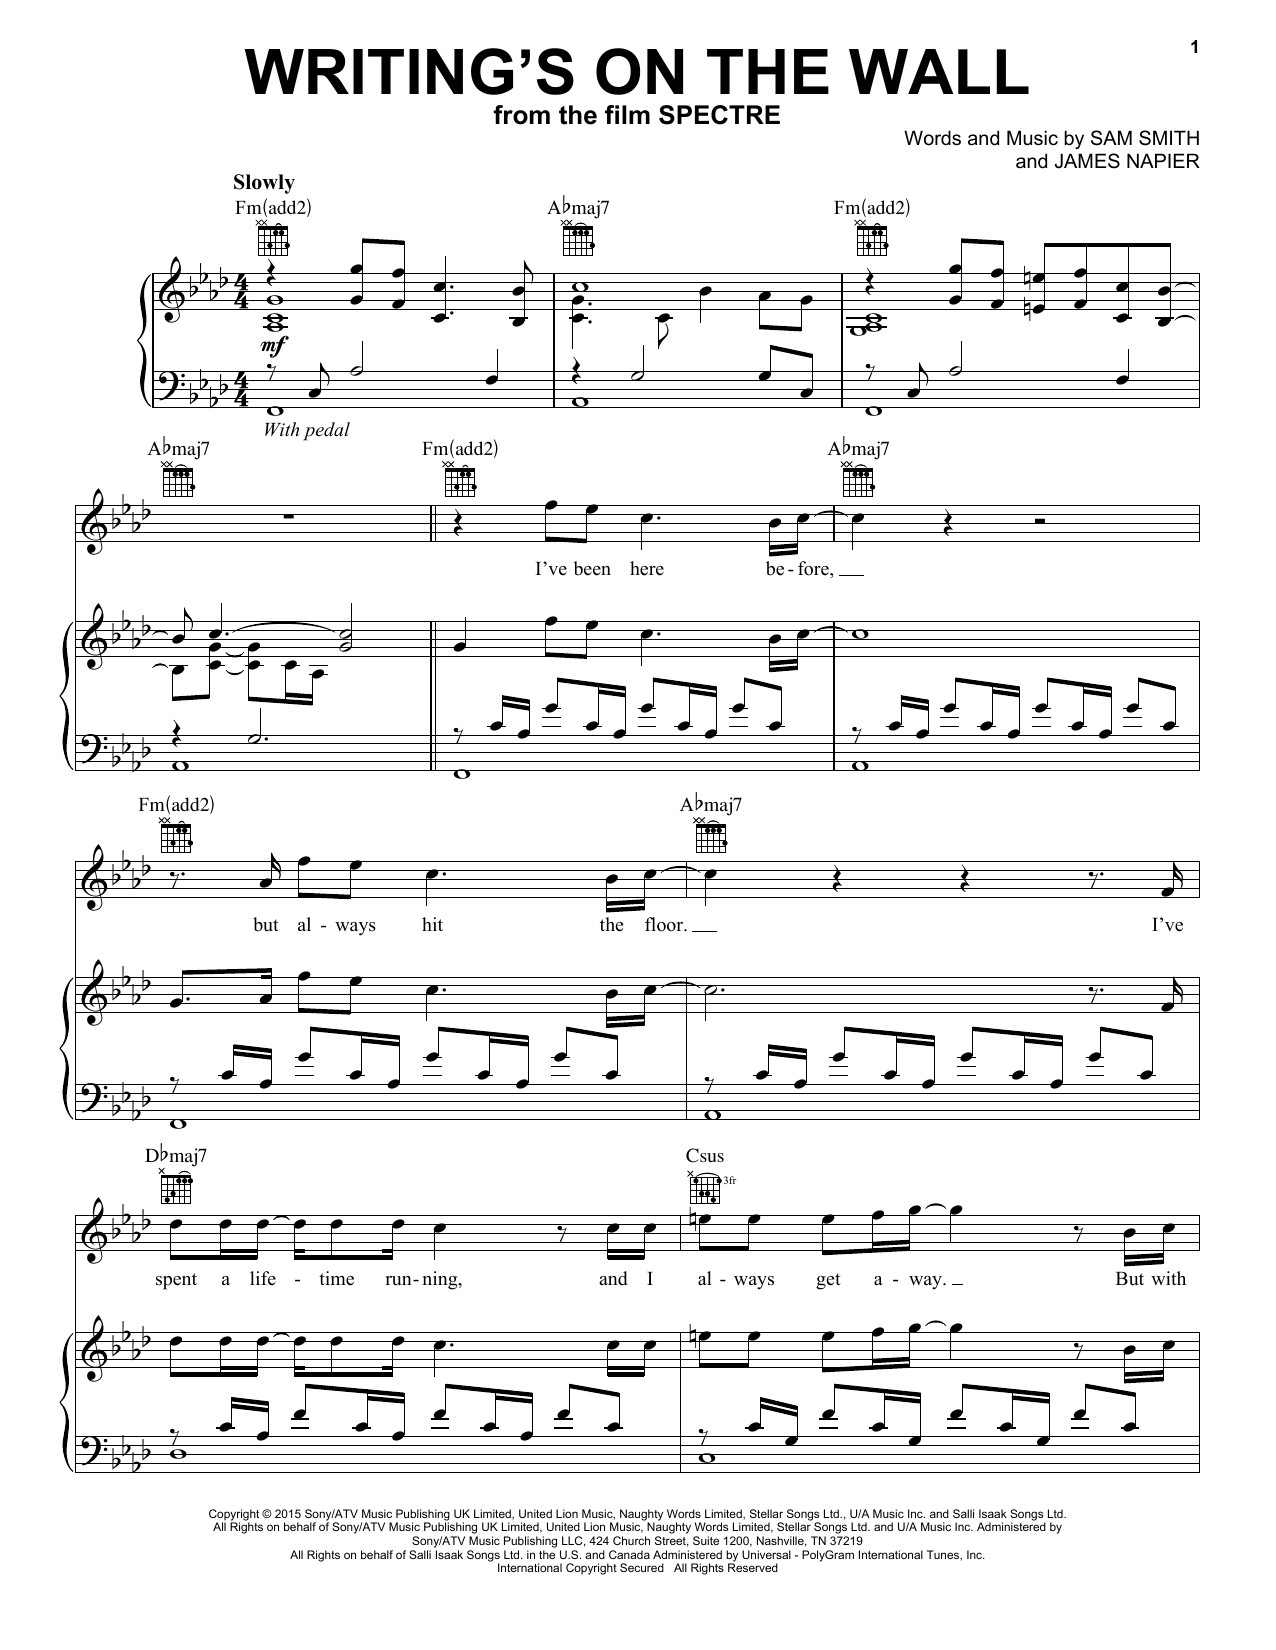 Sam Smith Writings On The Wall Sheet Music Notes Chords